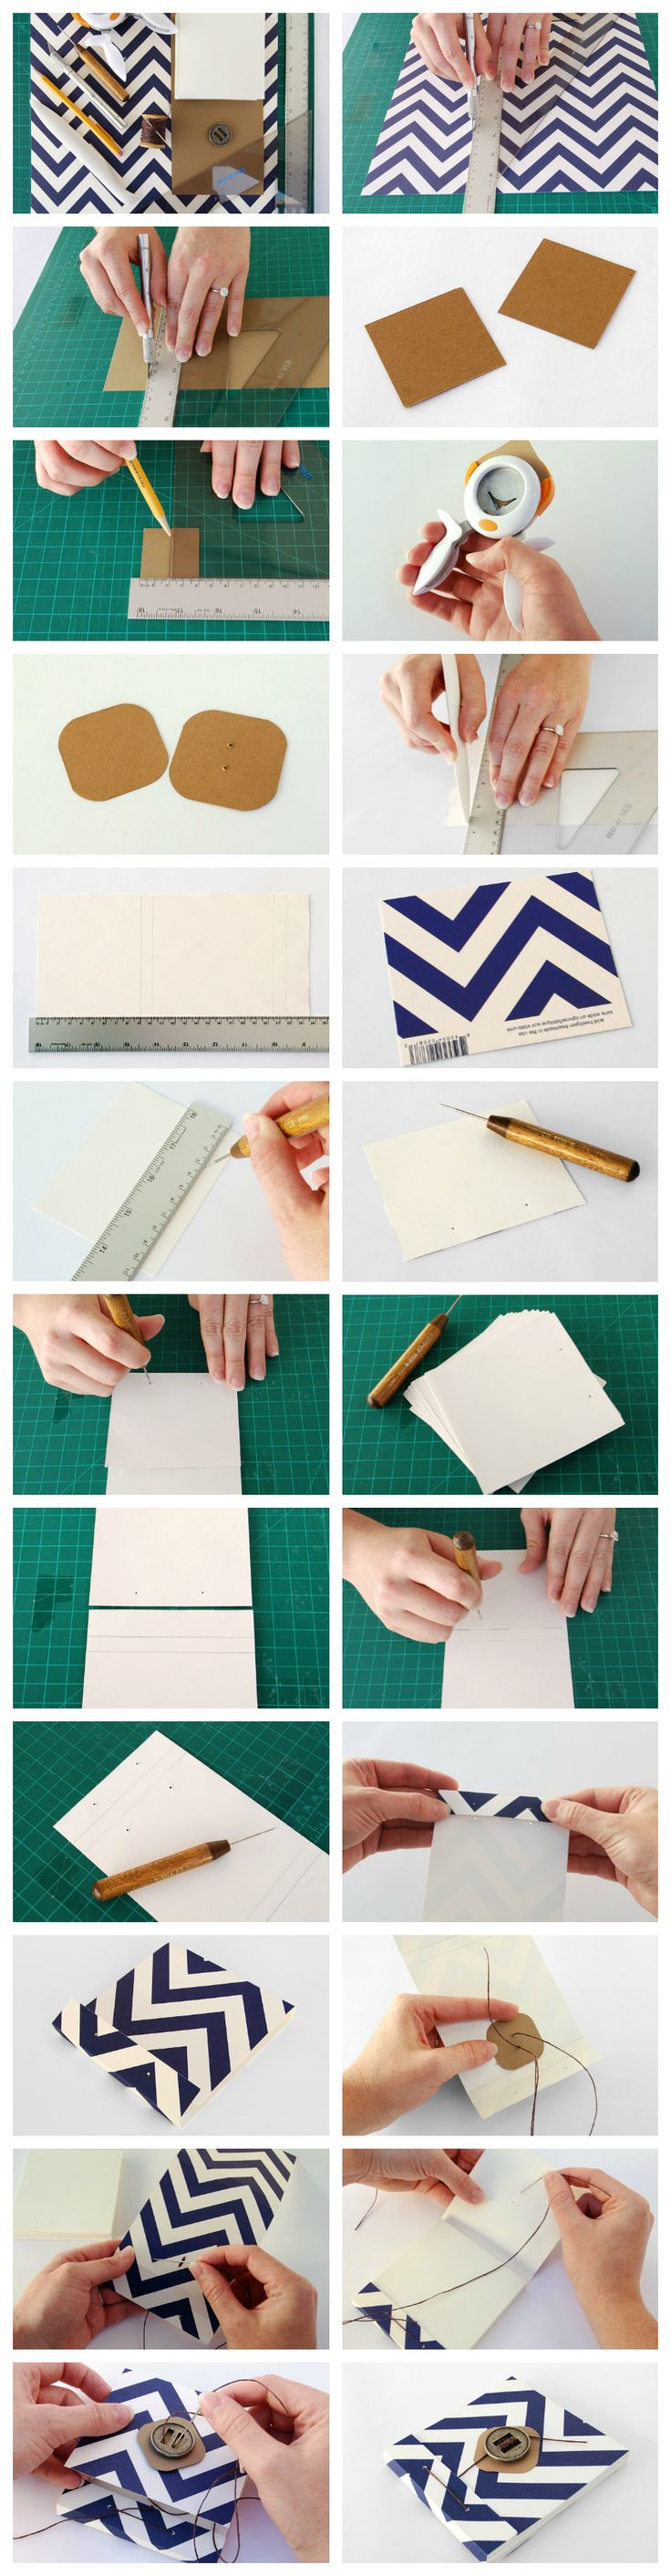 Easy bookbinding tutorial: How to make a gorgeous matchbook-style notebook via craft.tutsplus.com. #Tutorial #Craft #Bookbinding #Beginner